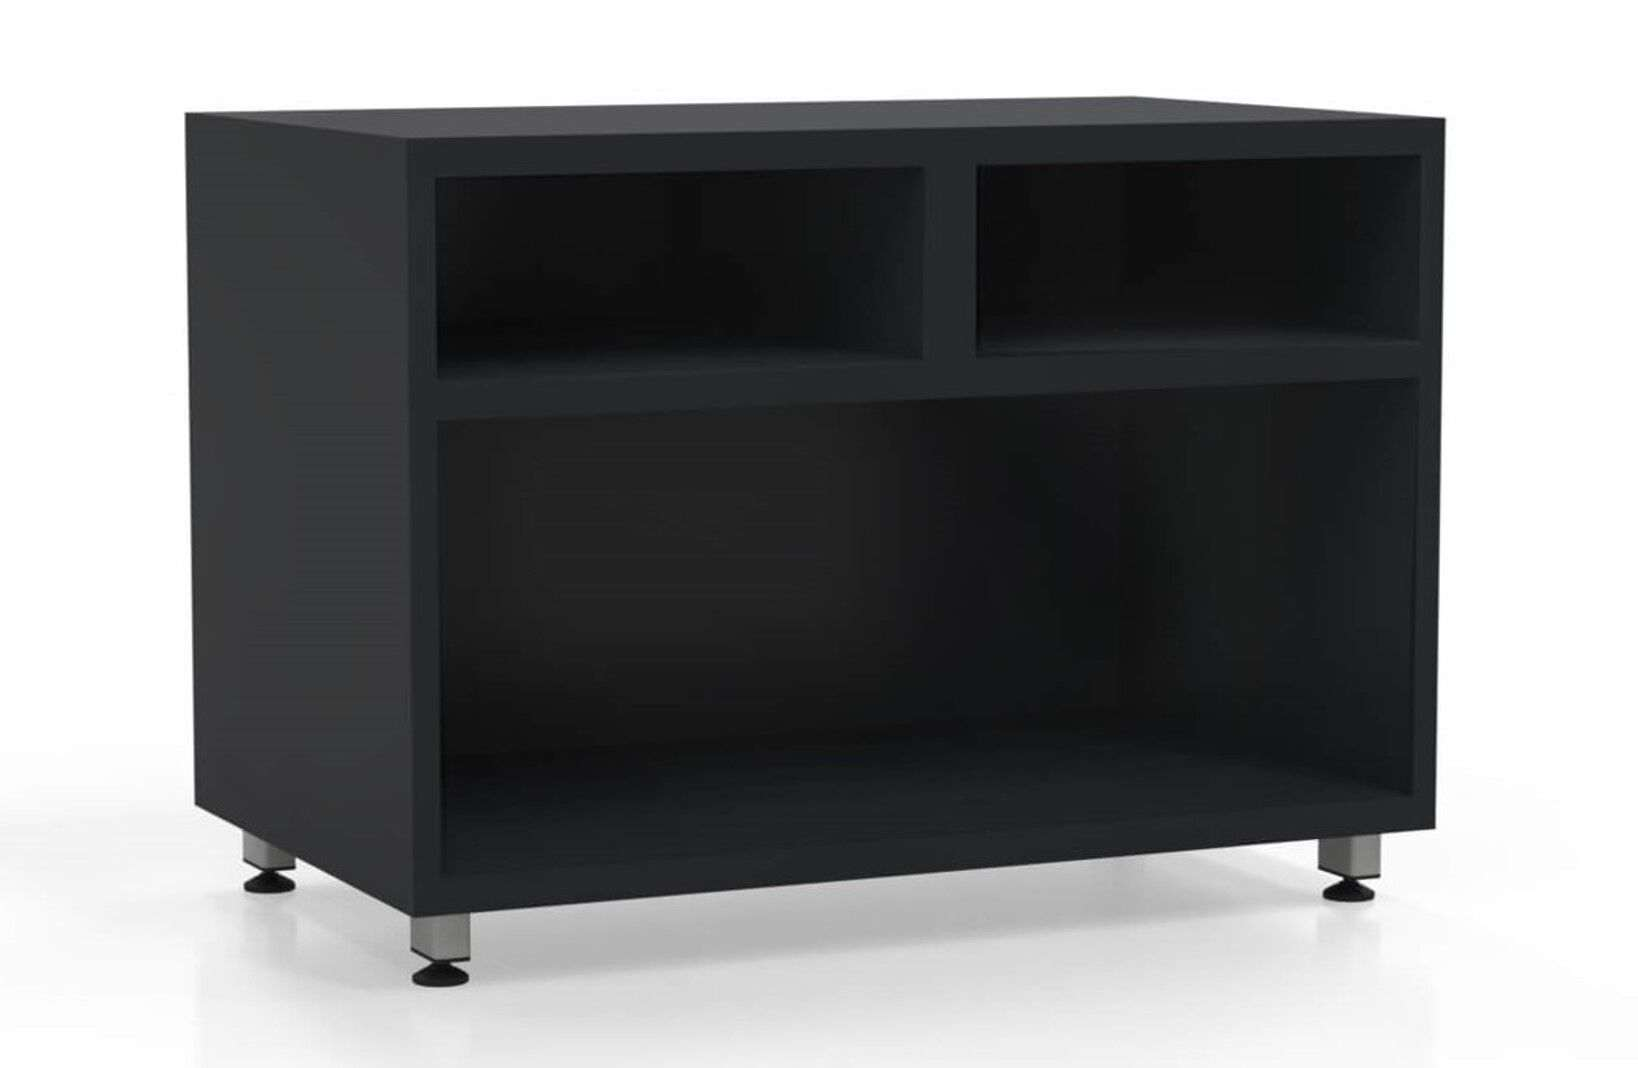 L shaped desk with filing cabinet open storage container raven_preview